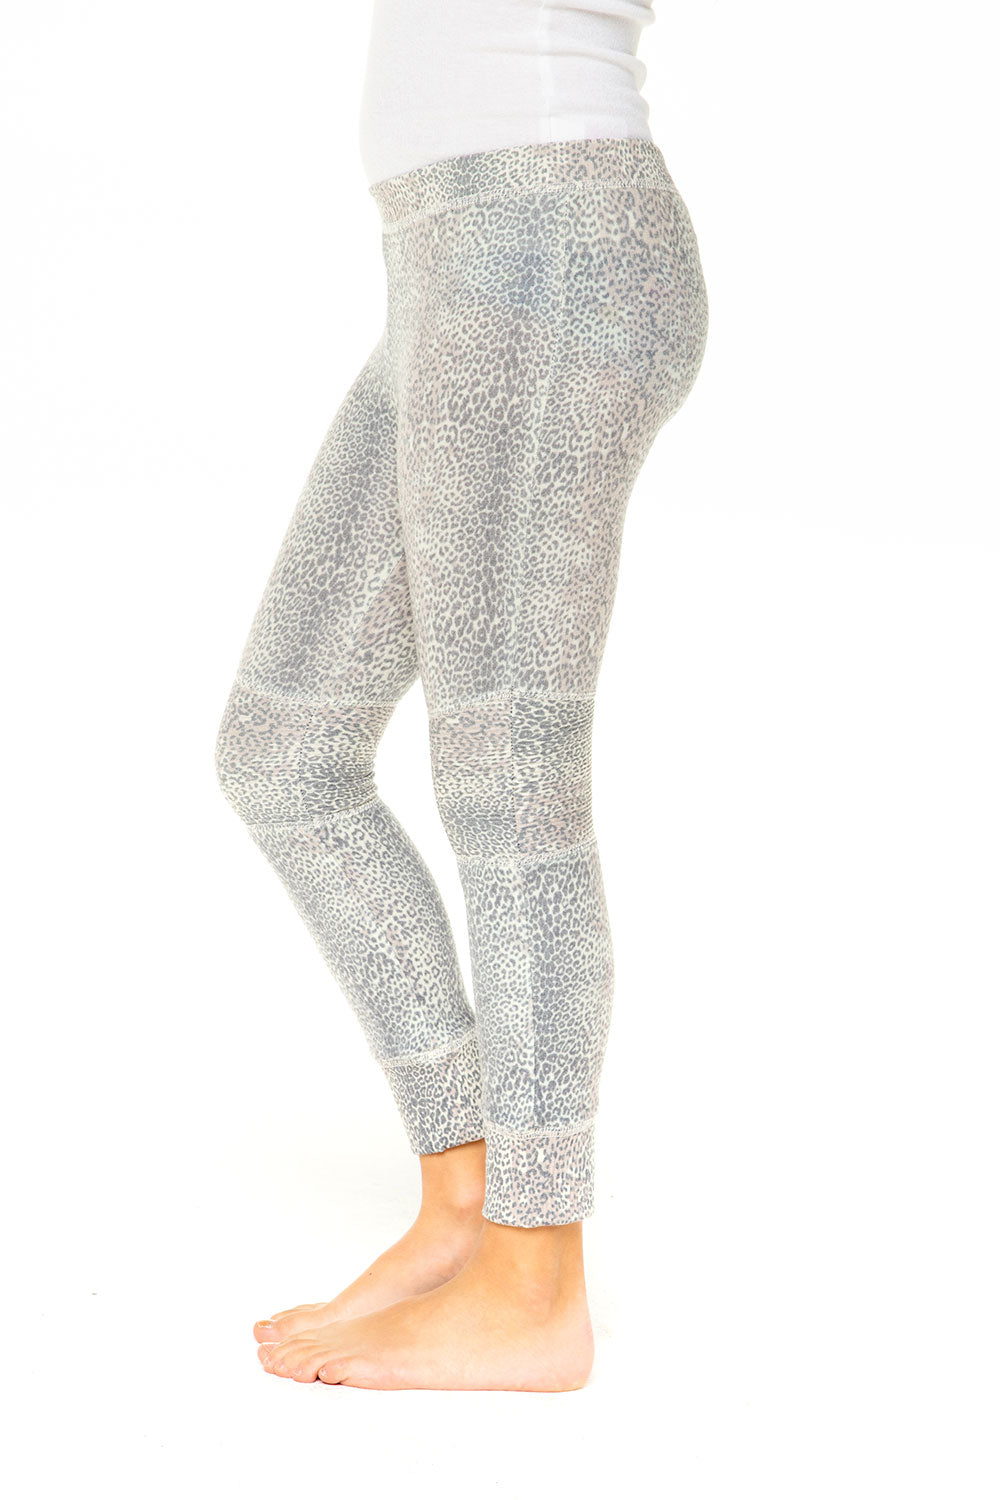 Girls Love Knit Moto Legging with Rib GIRLS chaserbrand4.myshopify.com